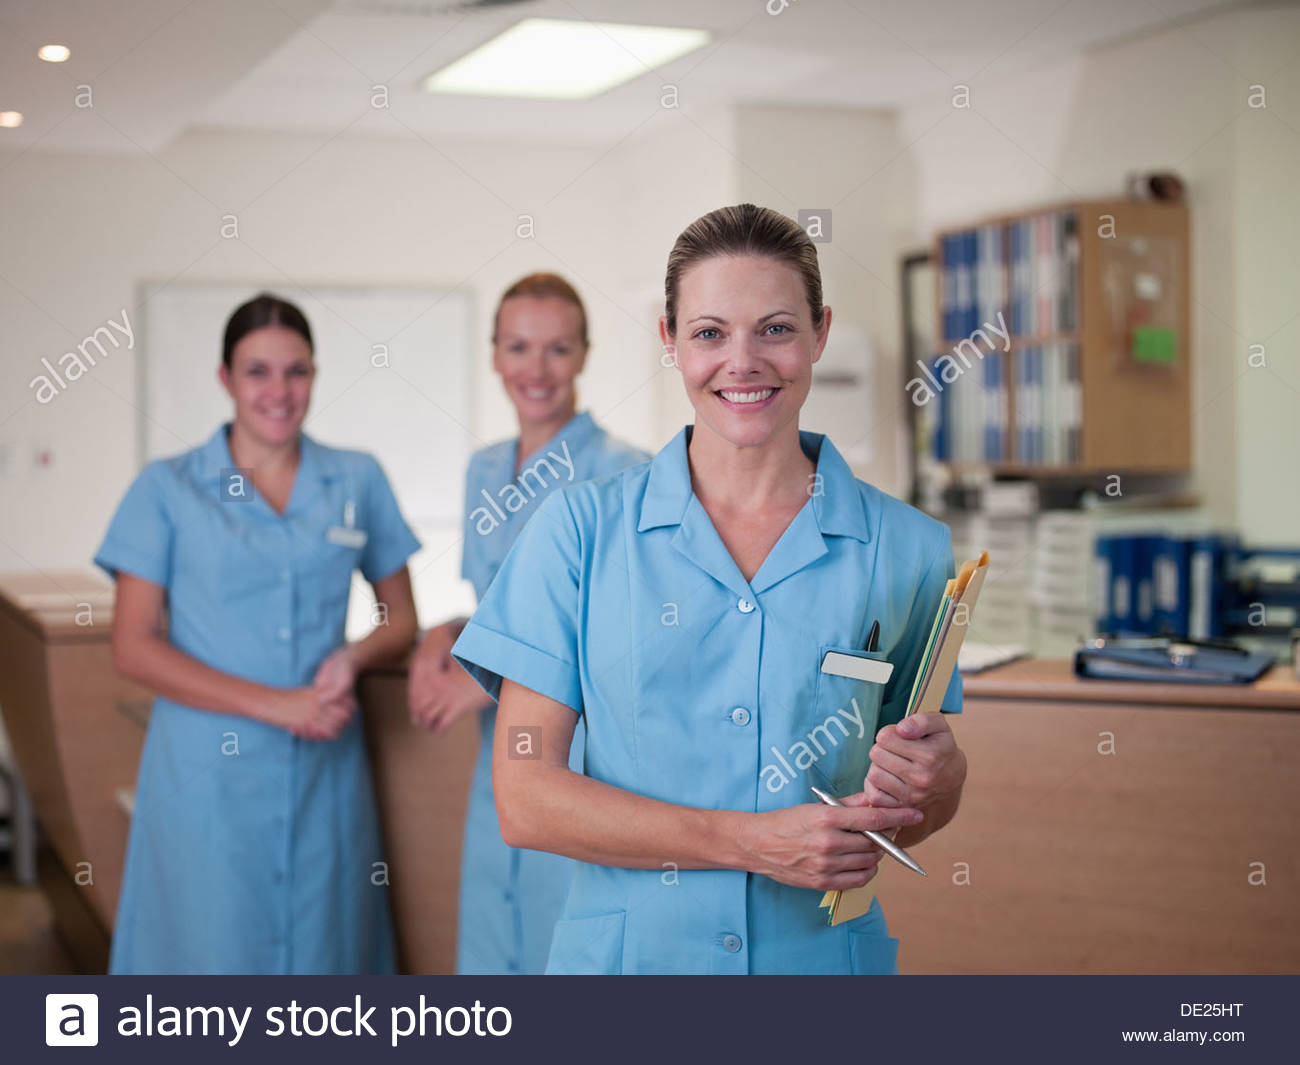 Nurse holding medical chart in hospital - Stock Image